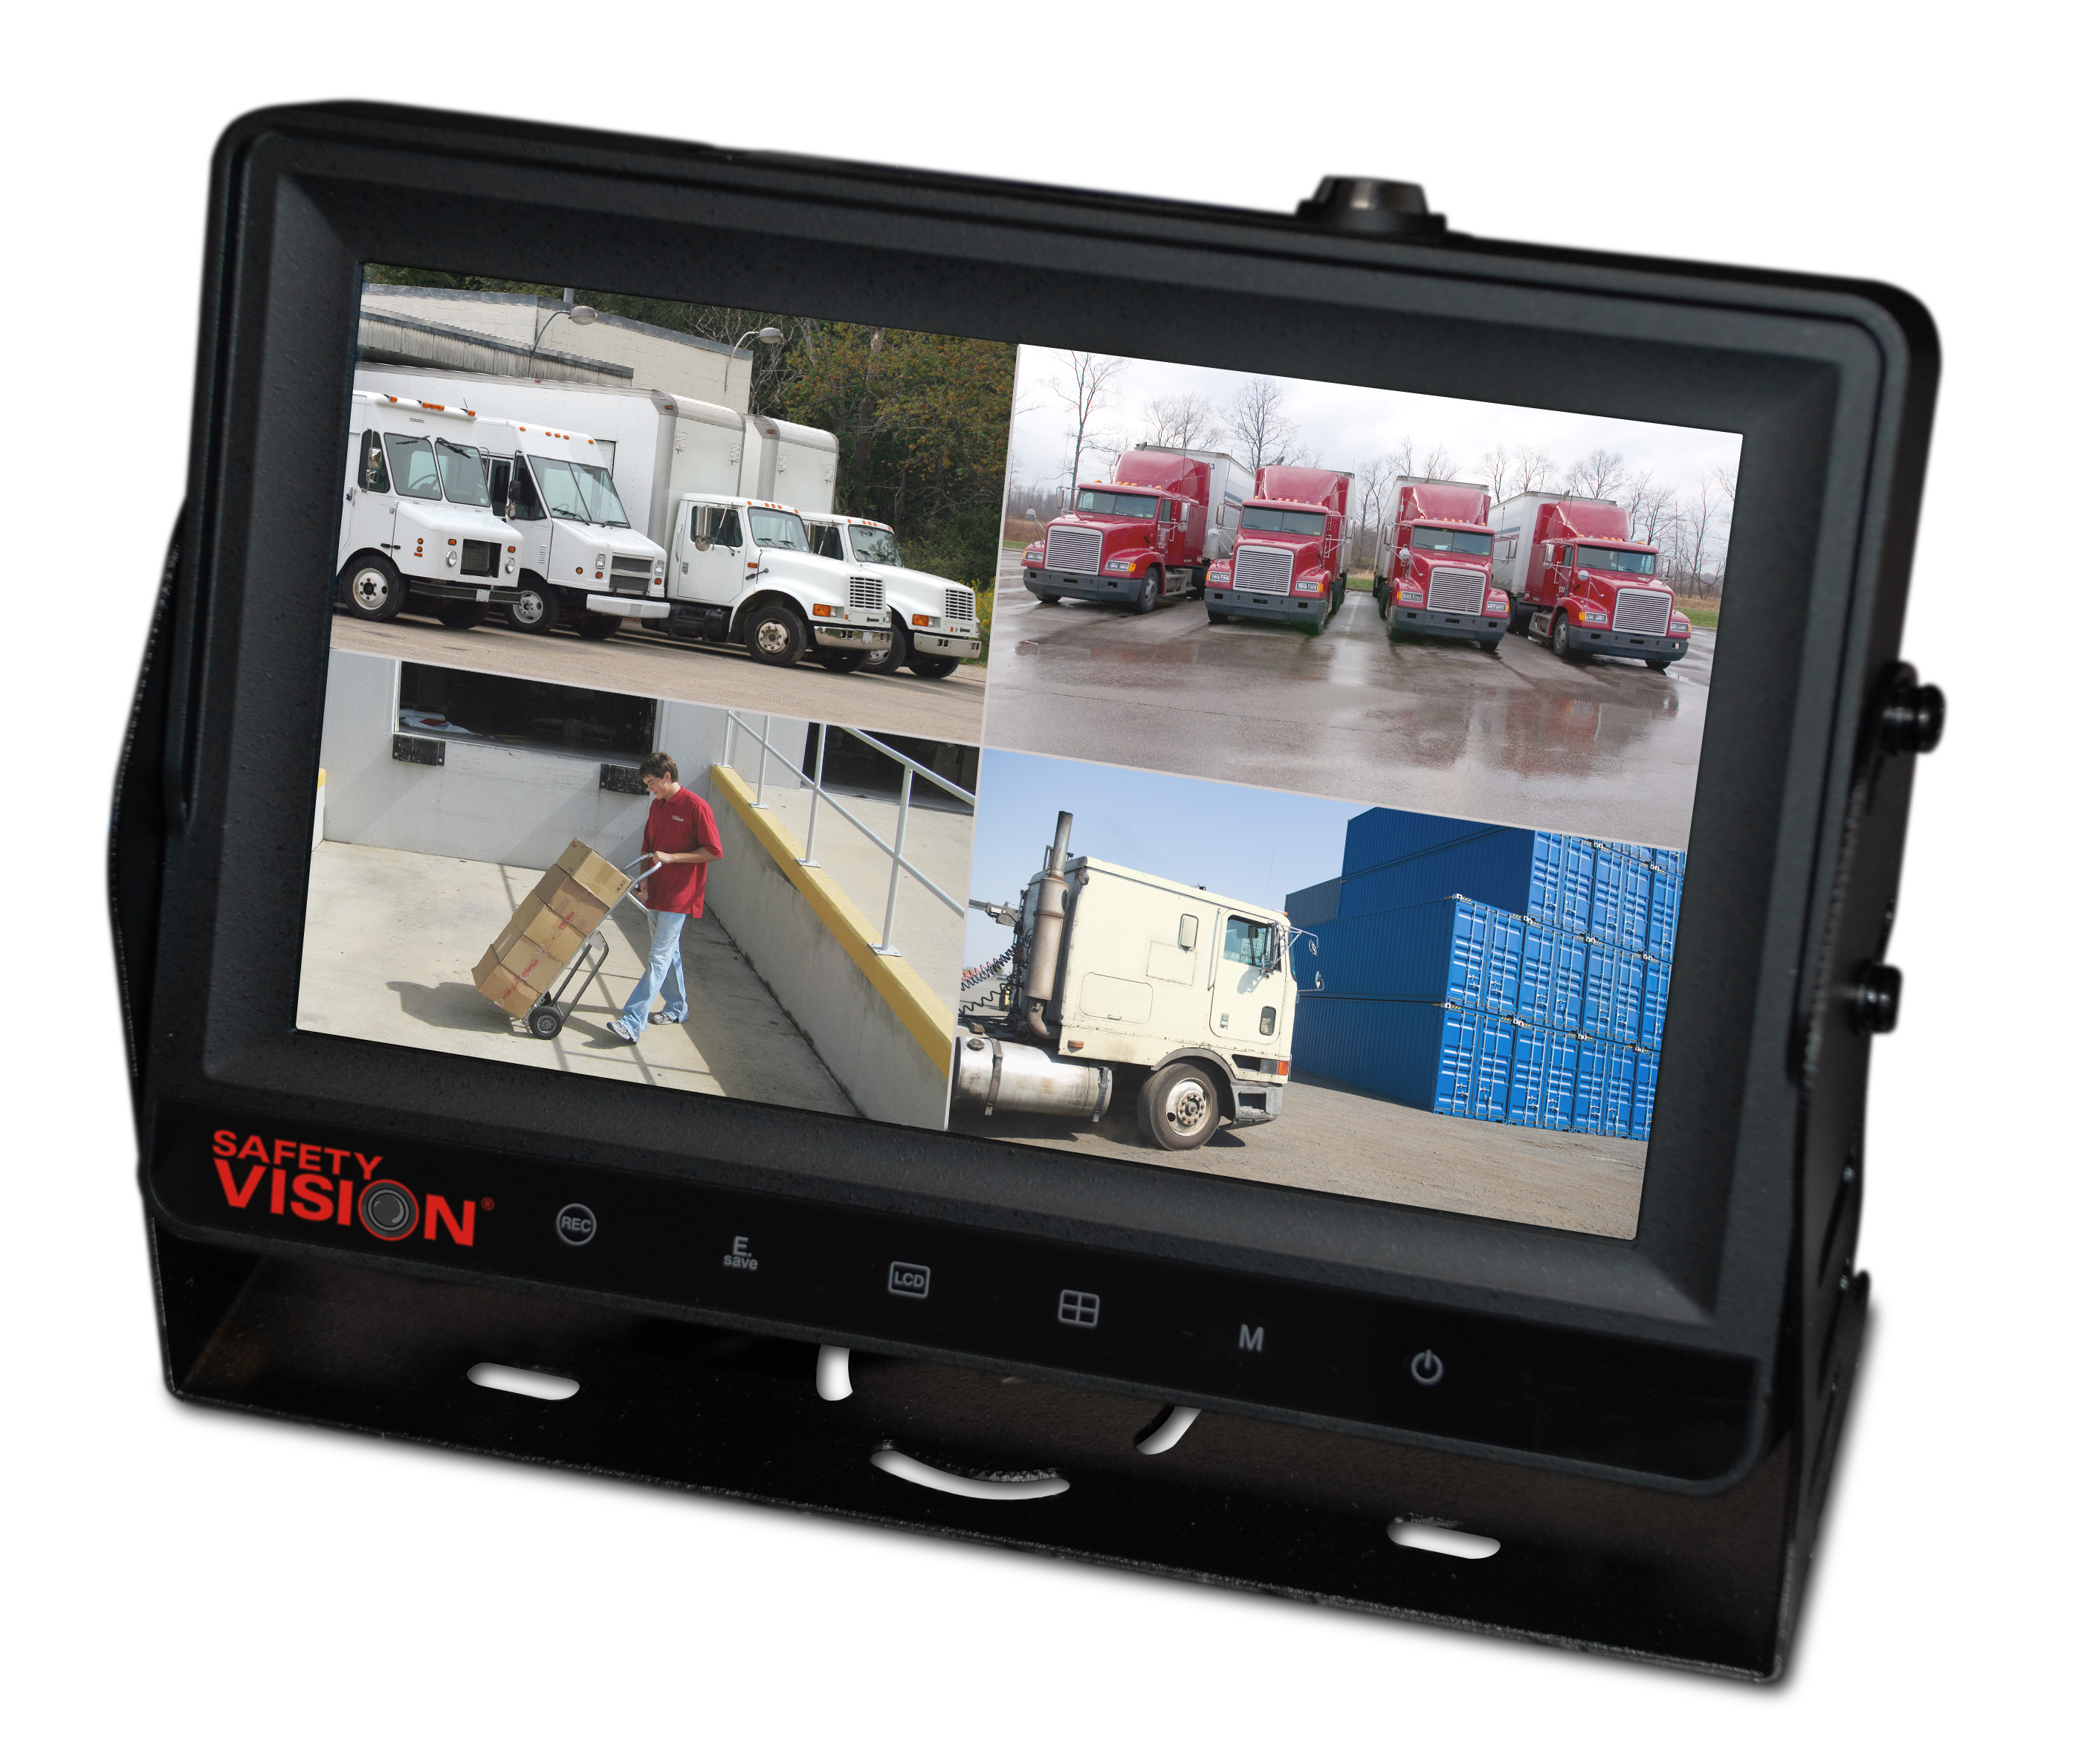 Safety Vision, LLC Releases the Simple, Yet Powerful, Touch Screen ...